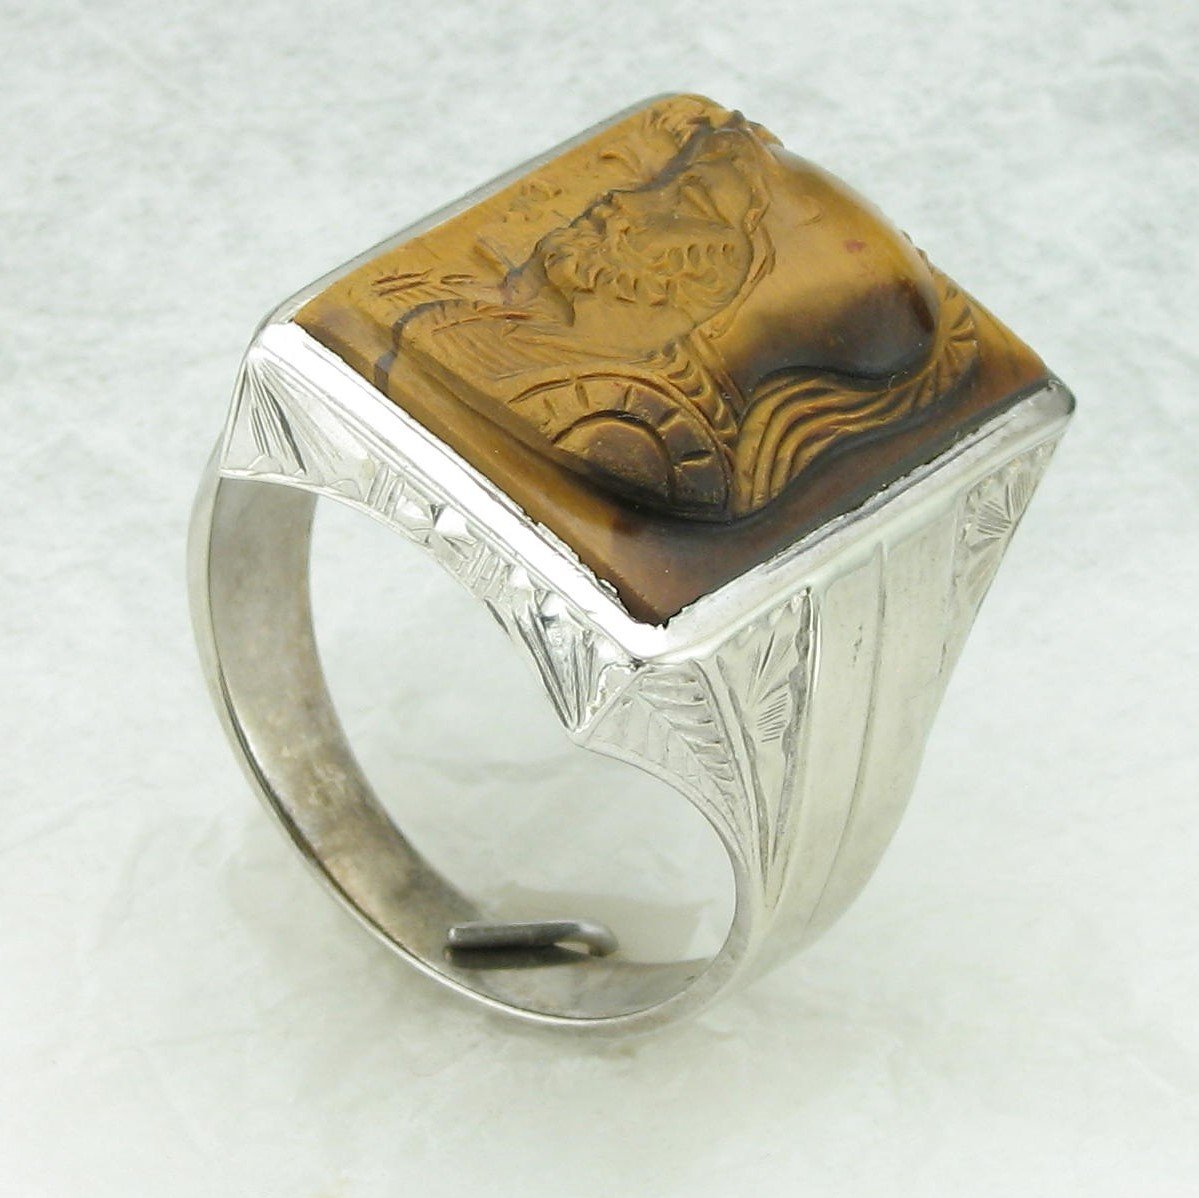 10K White Gold Tiger Eye Ring with Engraved Roman Figurine